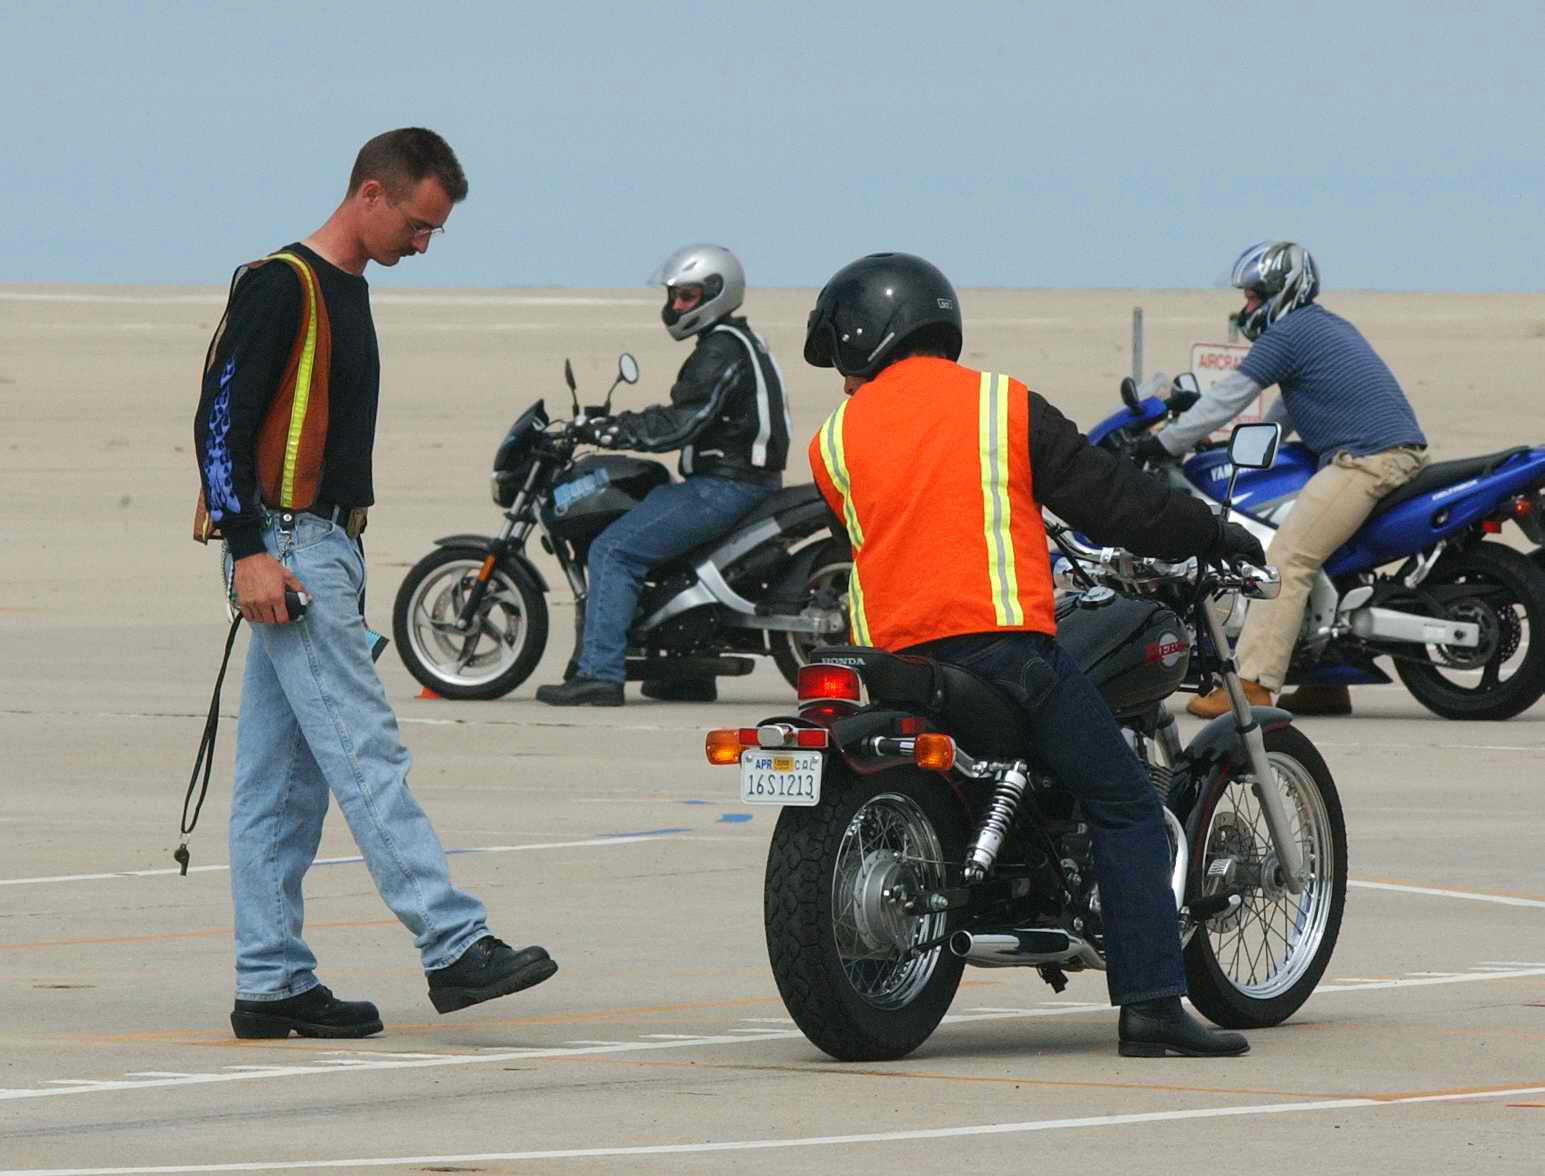 Bikes Used At Msf Course Motorcycle safety